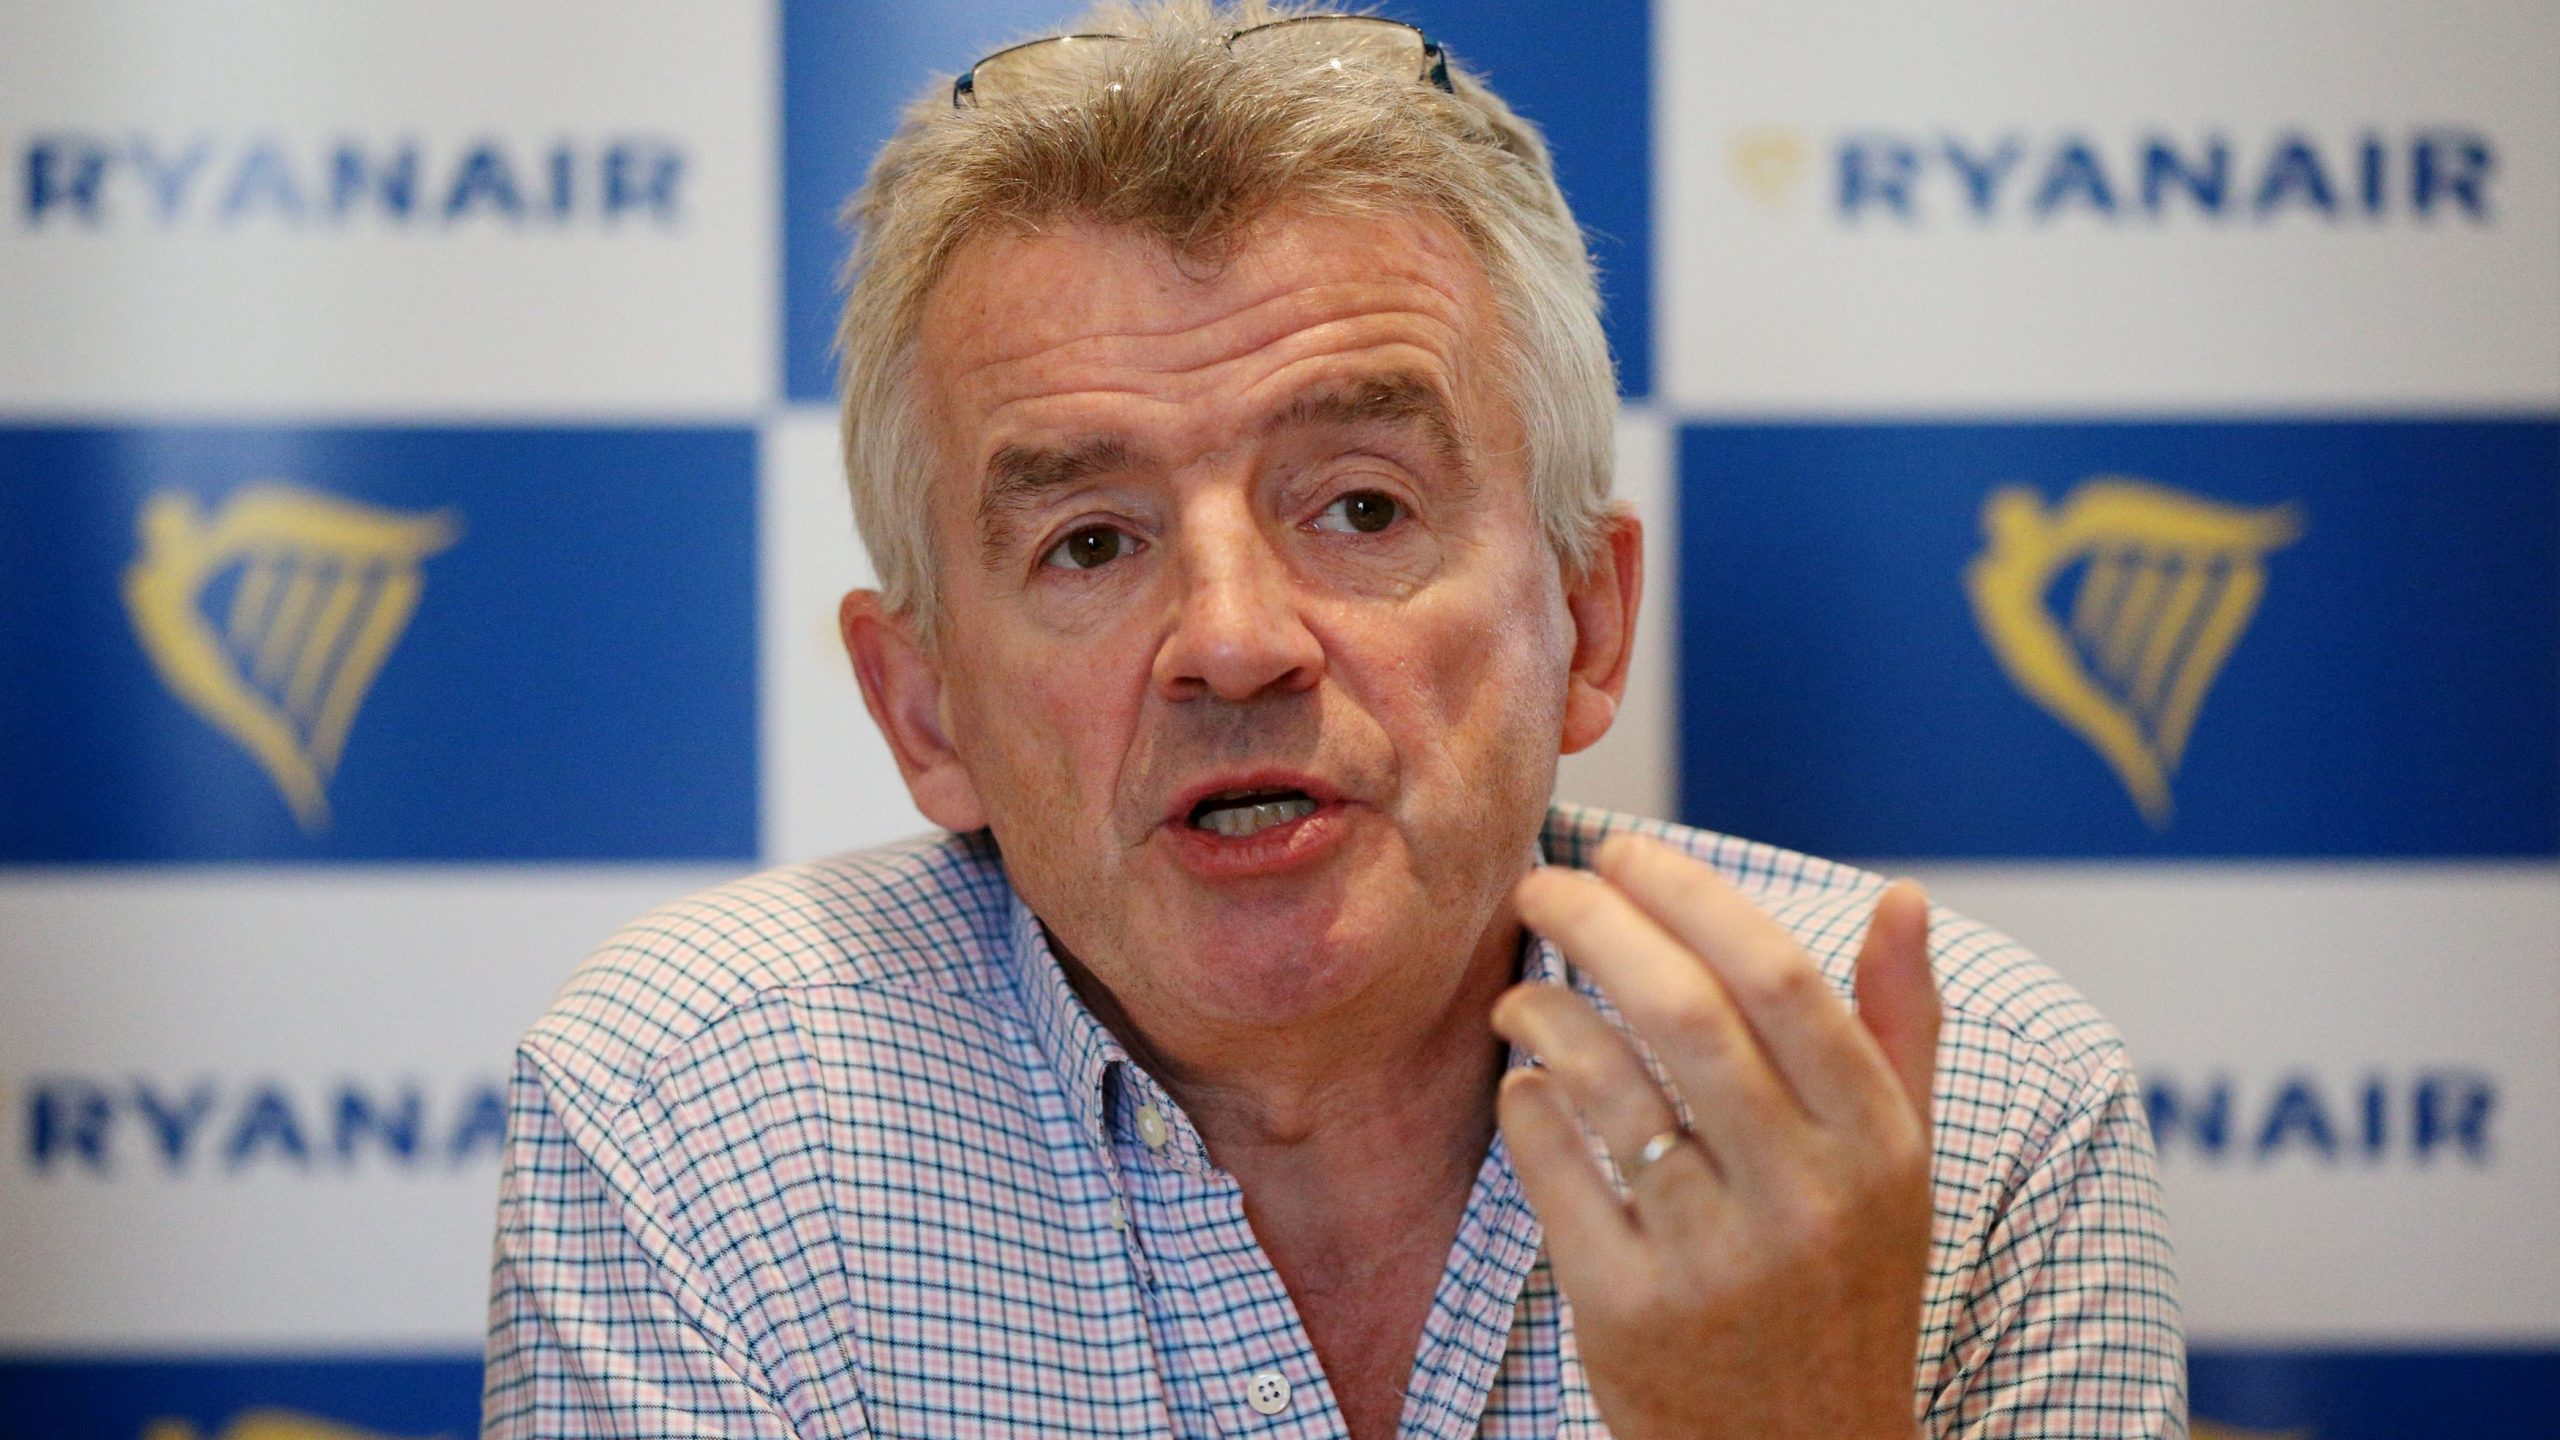 Ryanair Chief Sees Rapid Recovery for Summer Travel